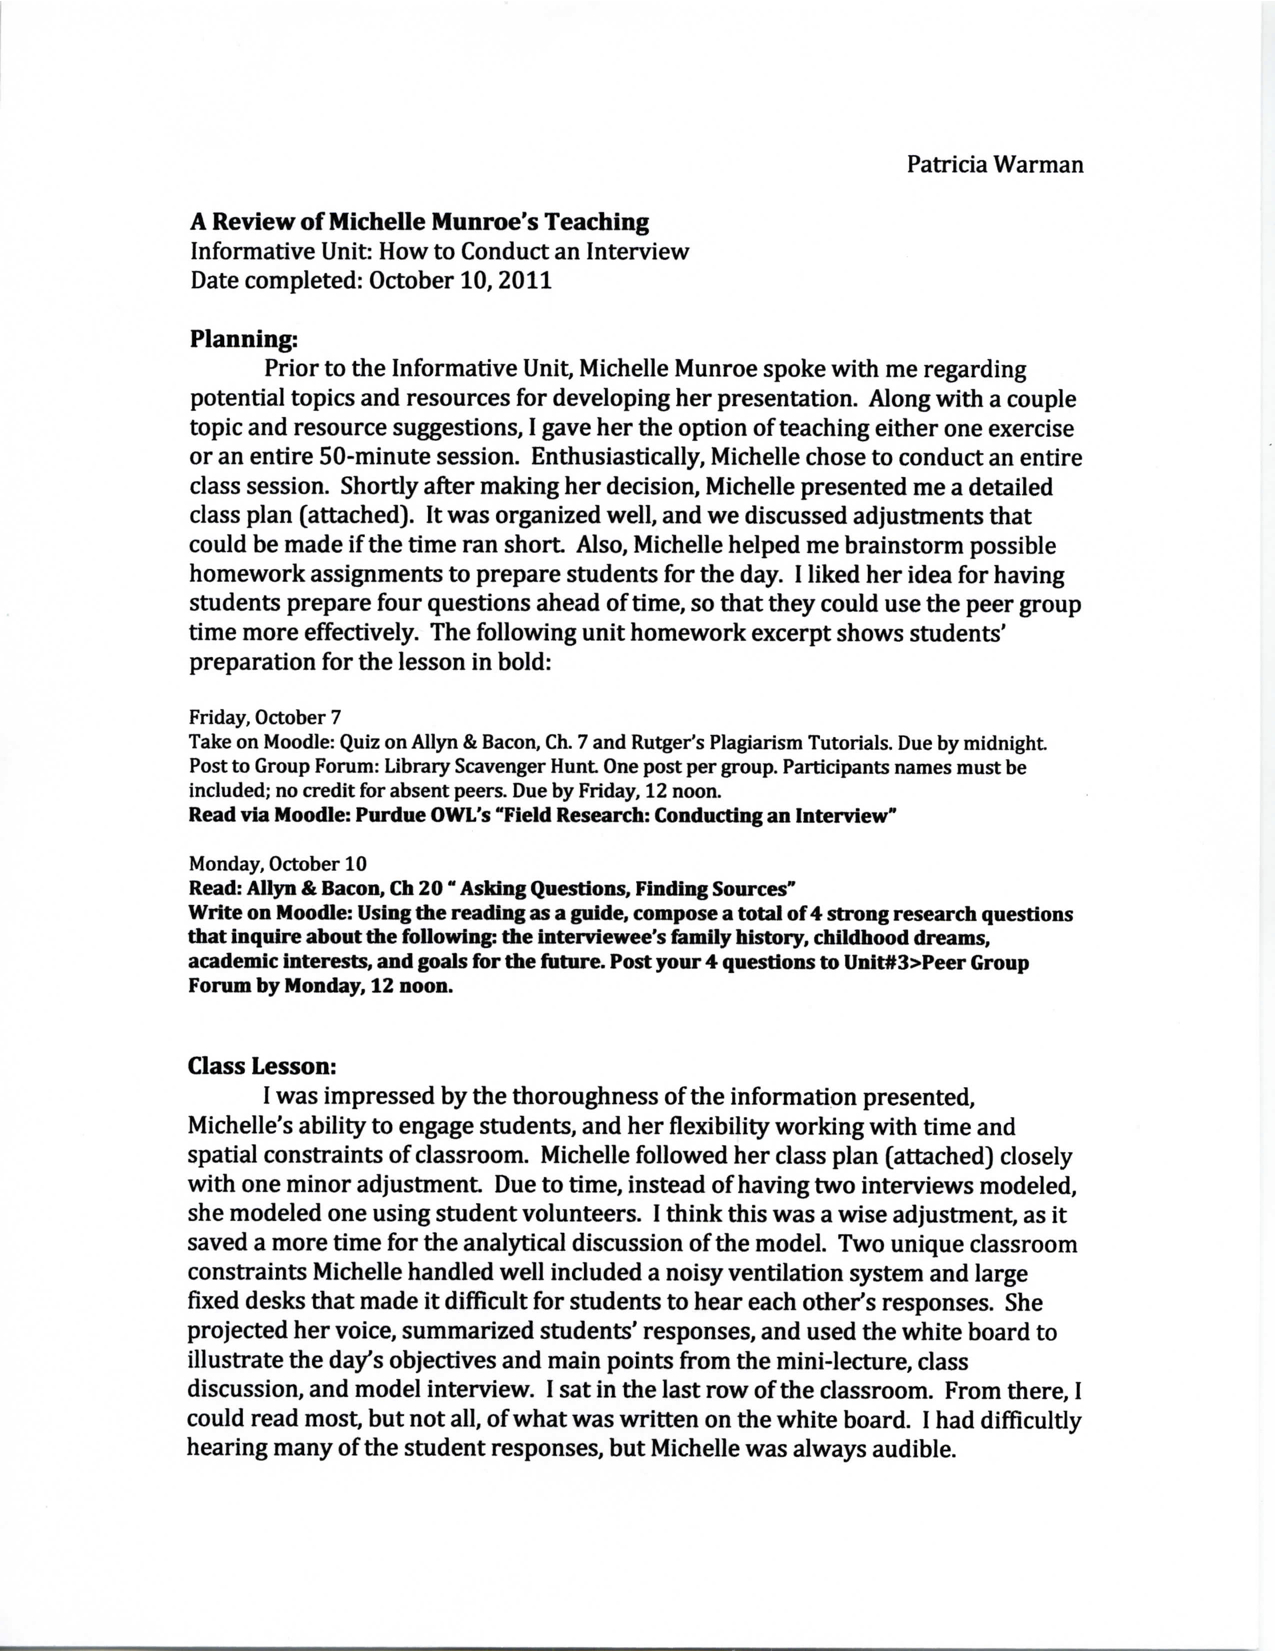 001 Essay Example Plagiarism College Write My Paper For Me Essays Summary Review Of Iecture U Check Impressive Do Please Free Online Custom Cheap Full